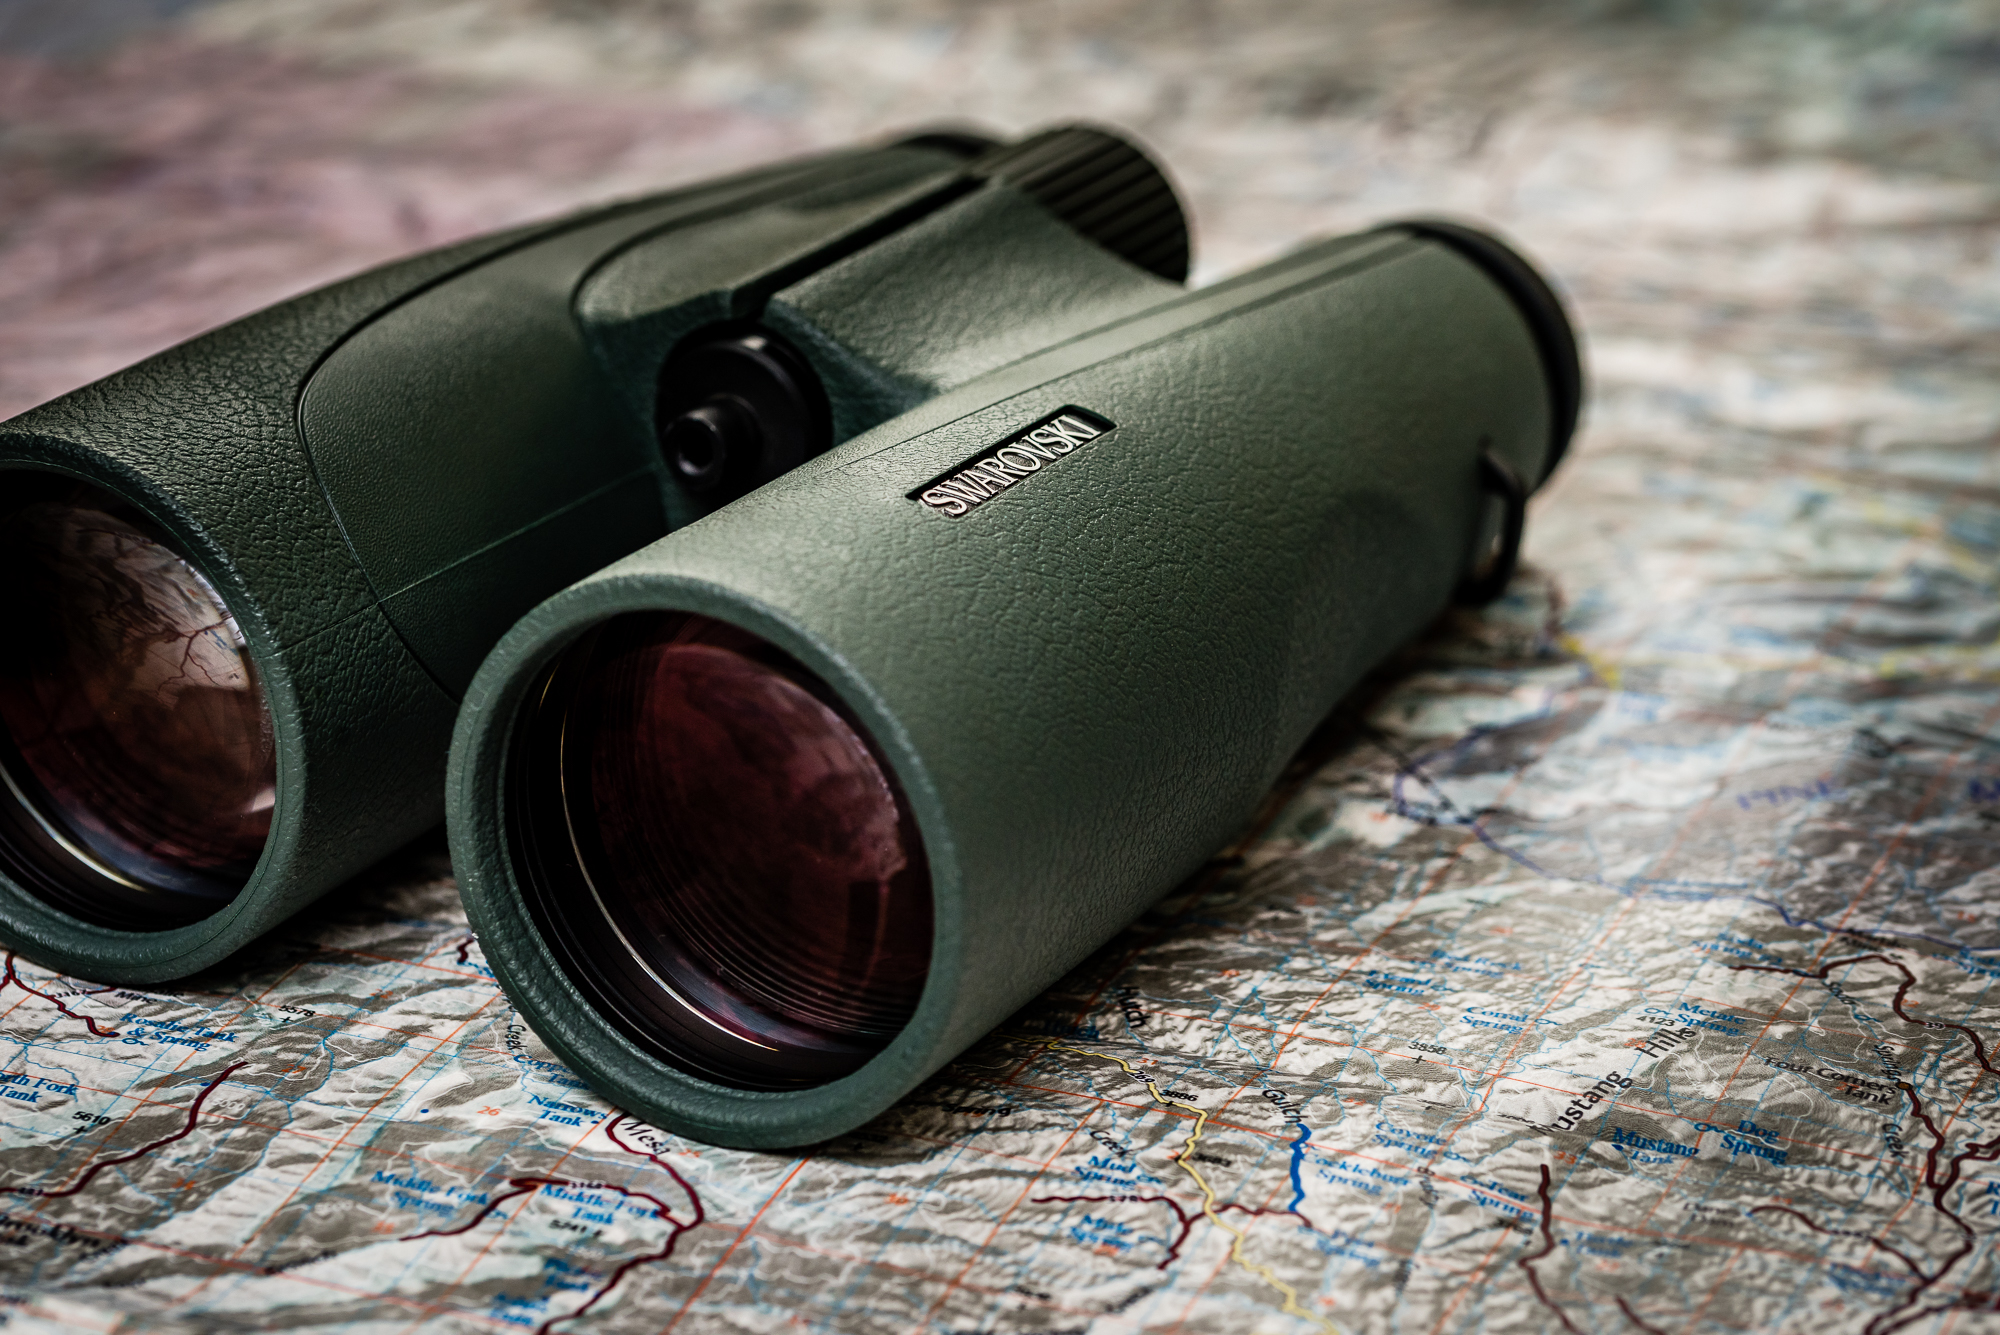 """For QUALITY hunting maps check out Flatline Maps! """"Get where they live""""  https://www.flatlinemaps.com/"""